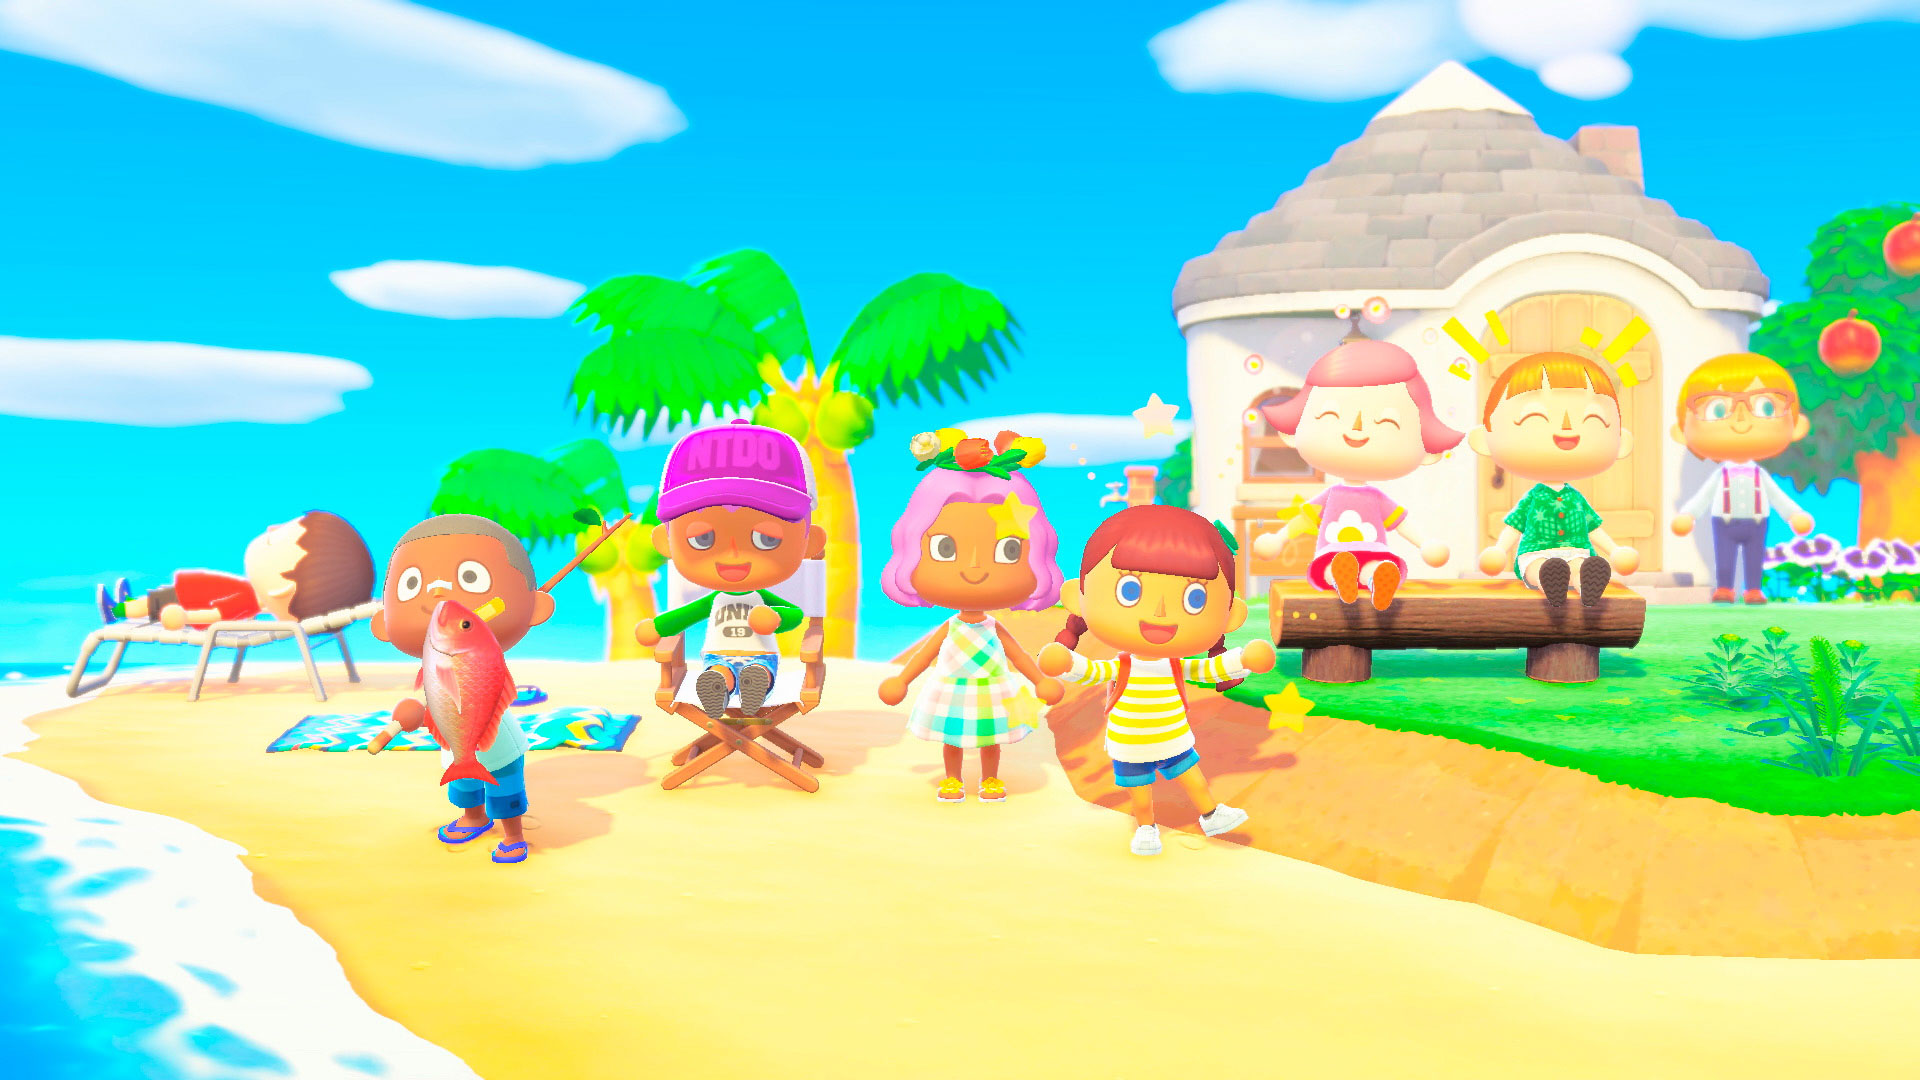 Animal Crossing New Horizons Wallpapers Hd Desktop Mobile Backgrounds Pro Game Guides